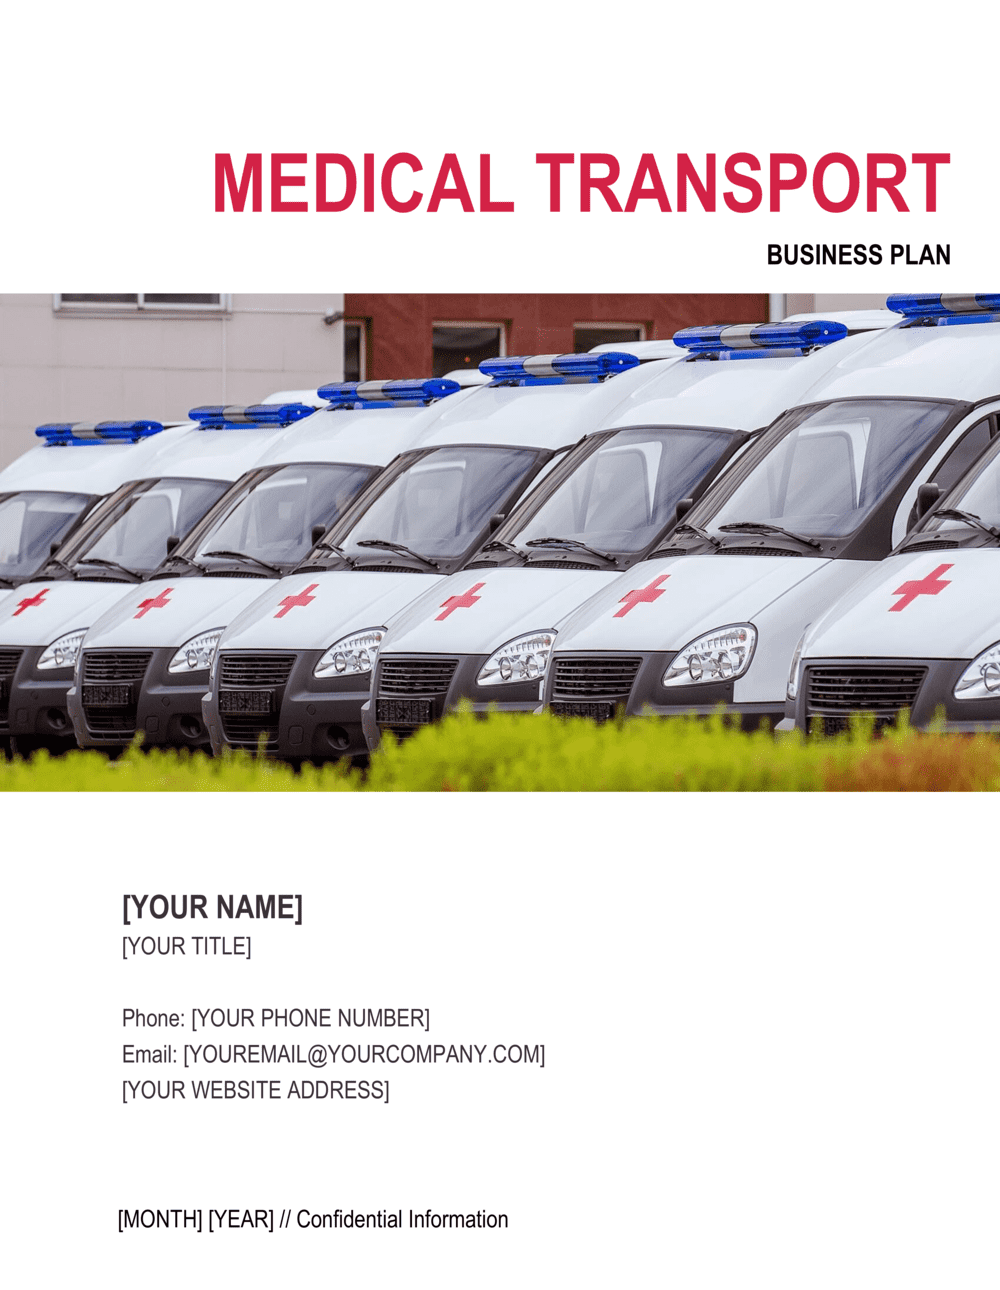 Business-in-a-Box's Medical Transport Business Plan Template